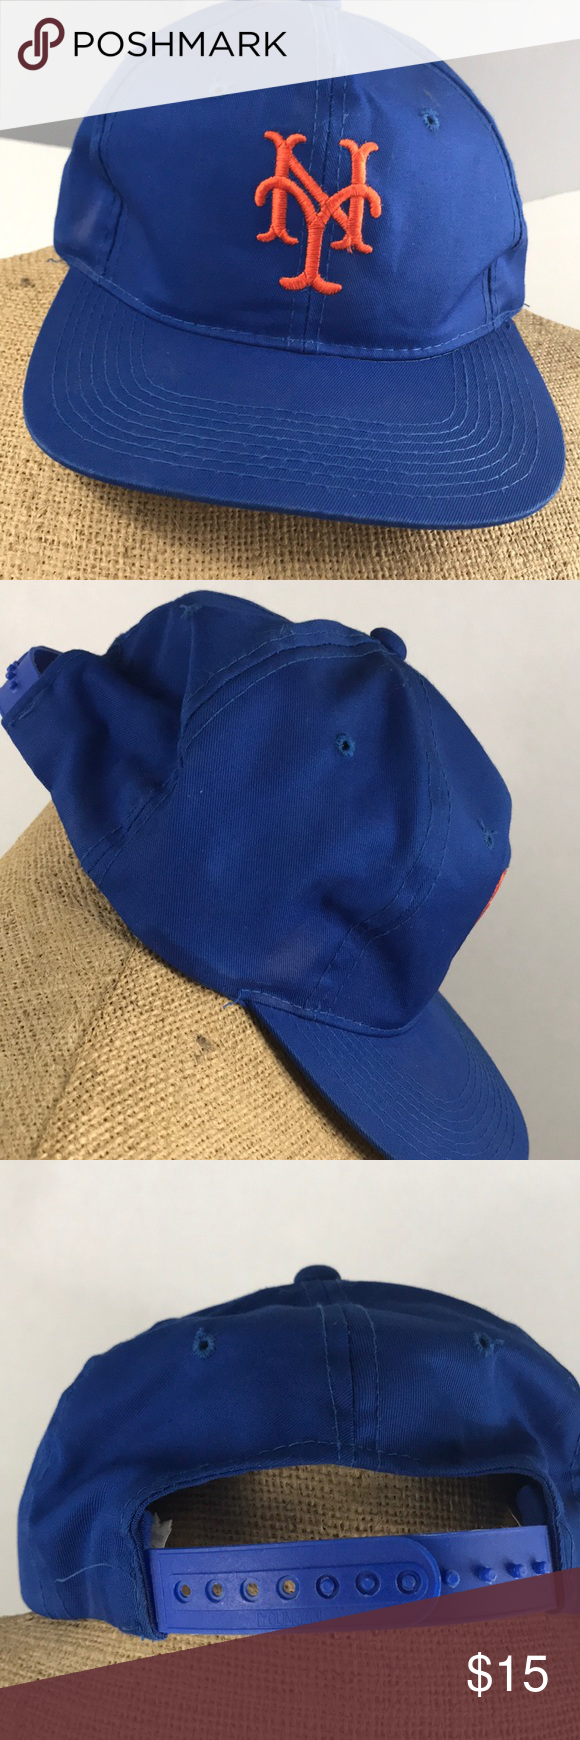 7a34d6d7add Vintage New York Mets 🧢 hat youngan hat company Vintage New York Mets 🧢 hat  youngan hat company Accessories Hats